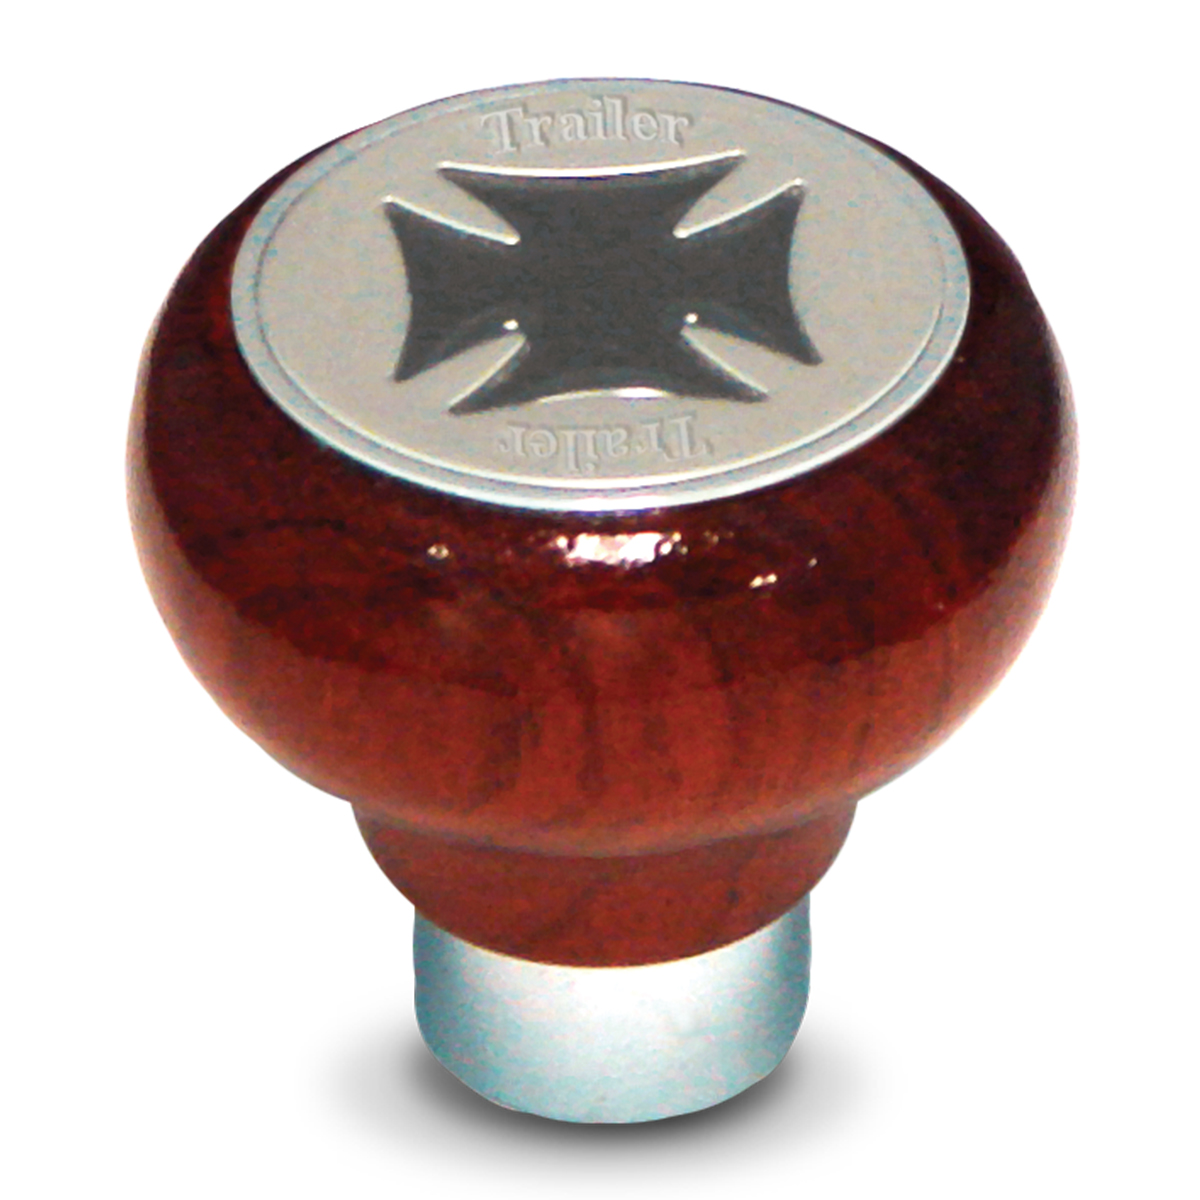 95560 Iron Cross Screw-In Air Valve Control Knob w/ Tractor Script